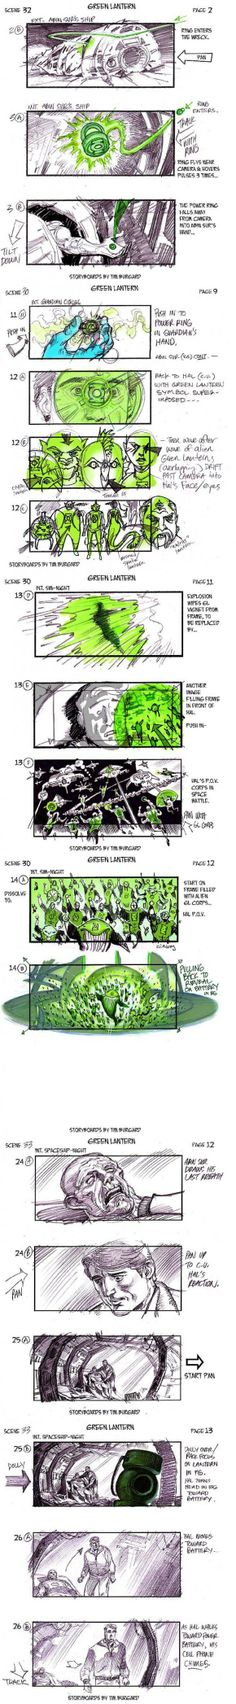 greenlanternstyoryboard.jpeg (580×4188) Tim Burgard has been kind enough to share those original storyboards that Guggenheim used to sell the film, which show off some iconic Lantern scenes and some pretty epic set pieces that just didn't look this cool in execution. Check out the art pitch below and let us know what you think: